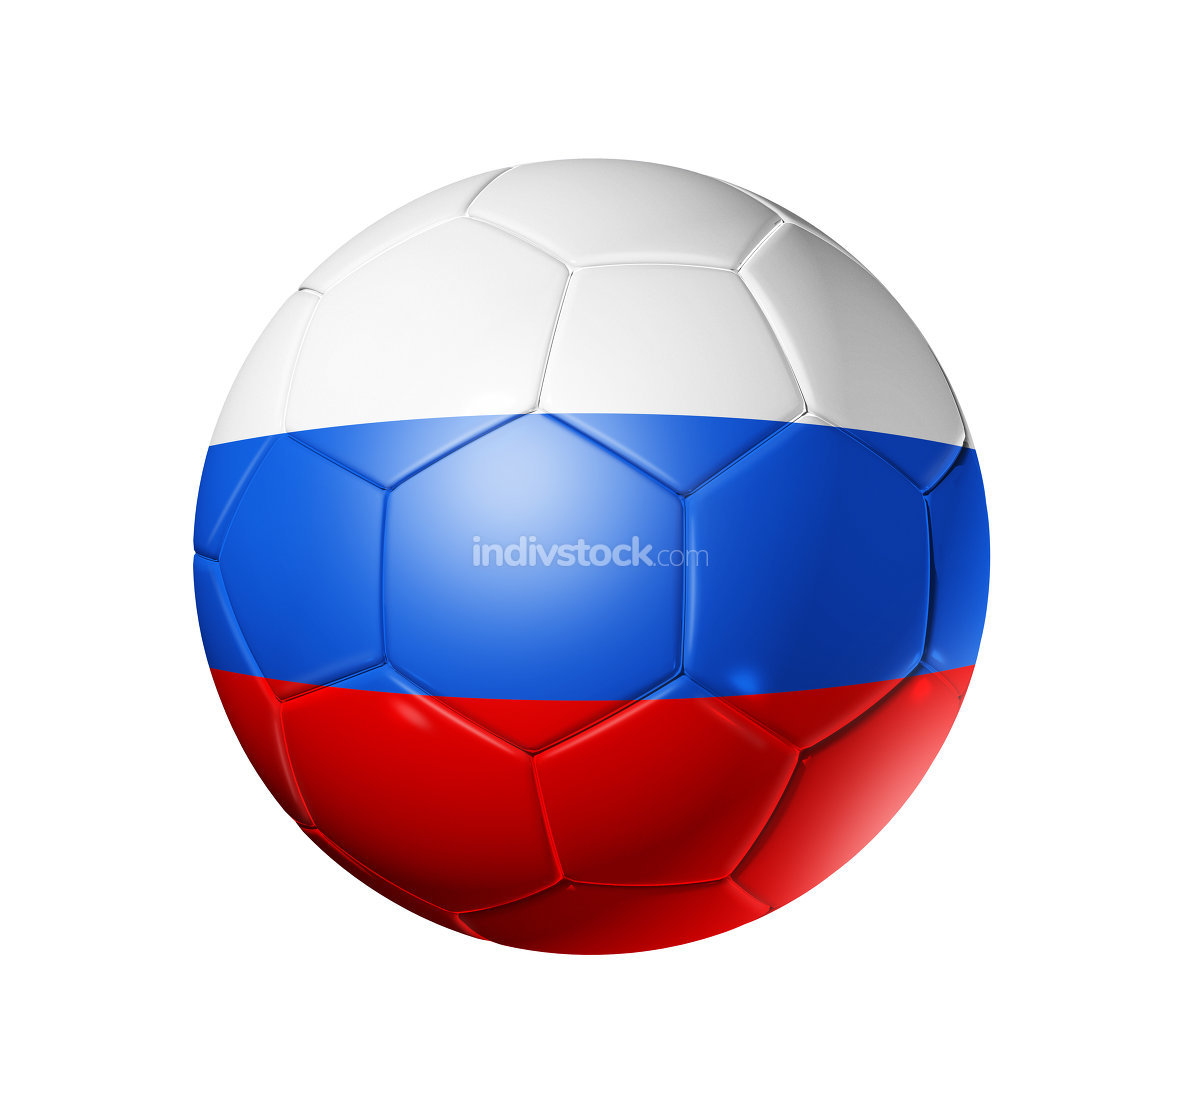 Soccer football ball with Russia flag 3d-rendering